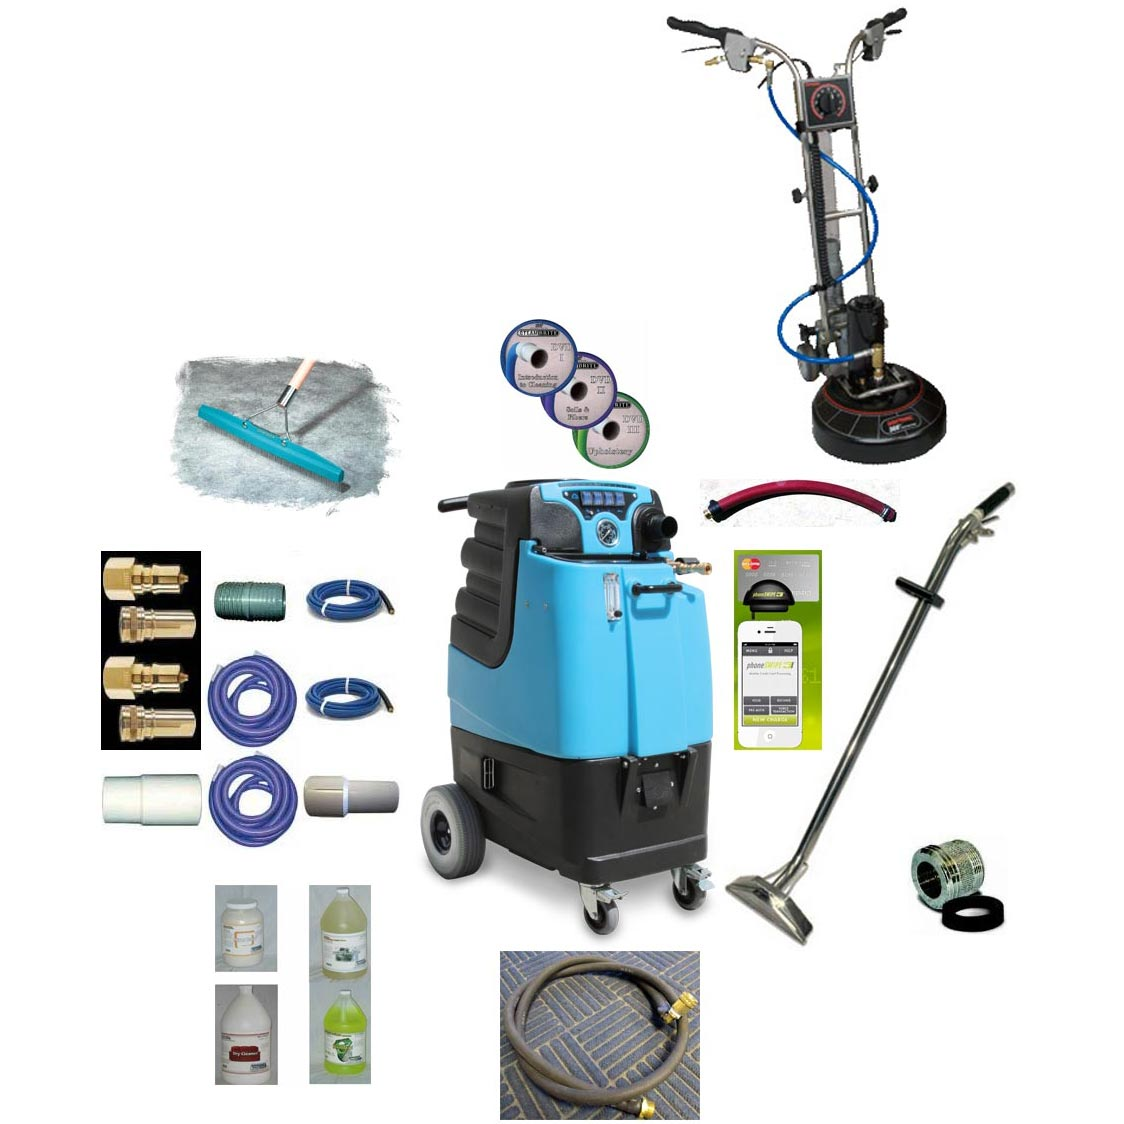 Rotovac 360i Mytee LTD12 Speedster Tile Carpet Cleaning Machine 12gal 1000psi Dual 3 Stage Vacs Auto Fill Auto Dump Bundle